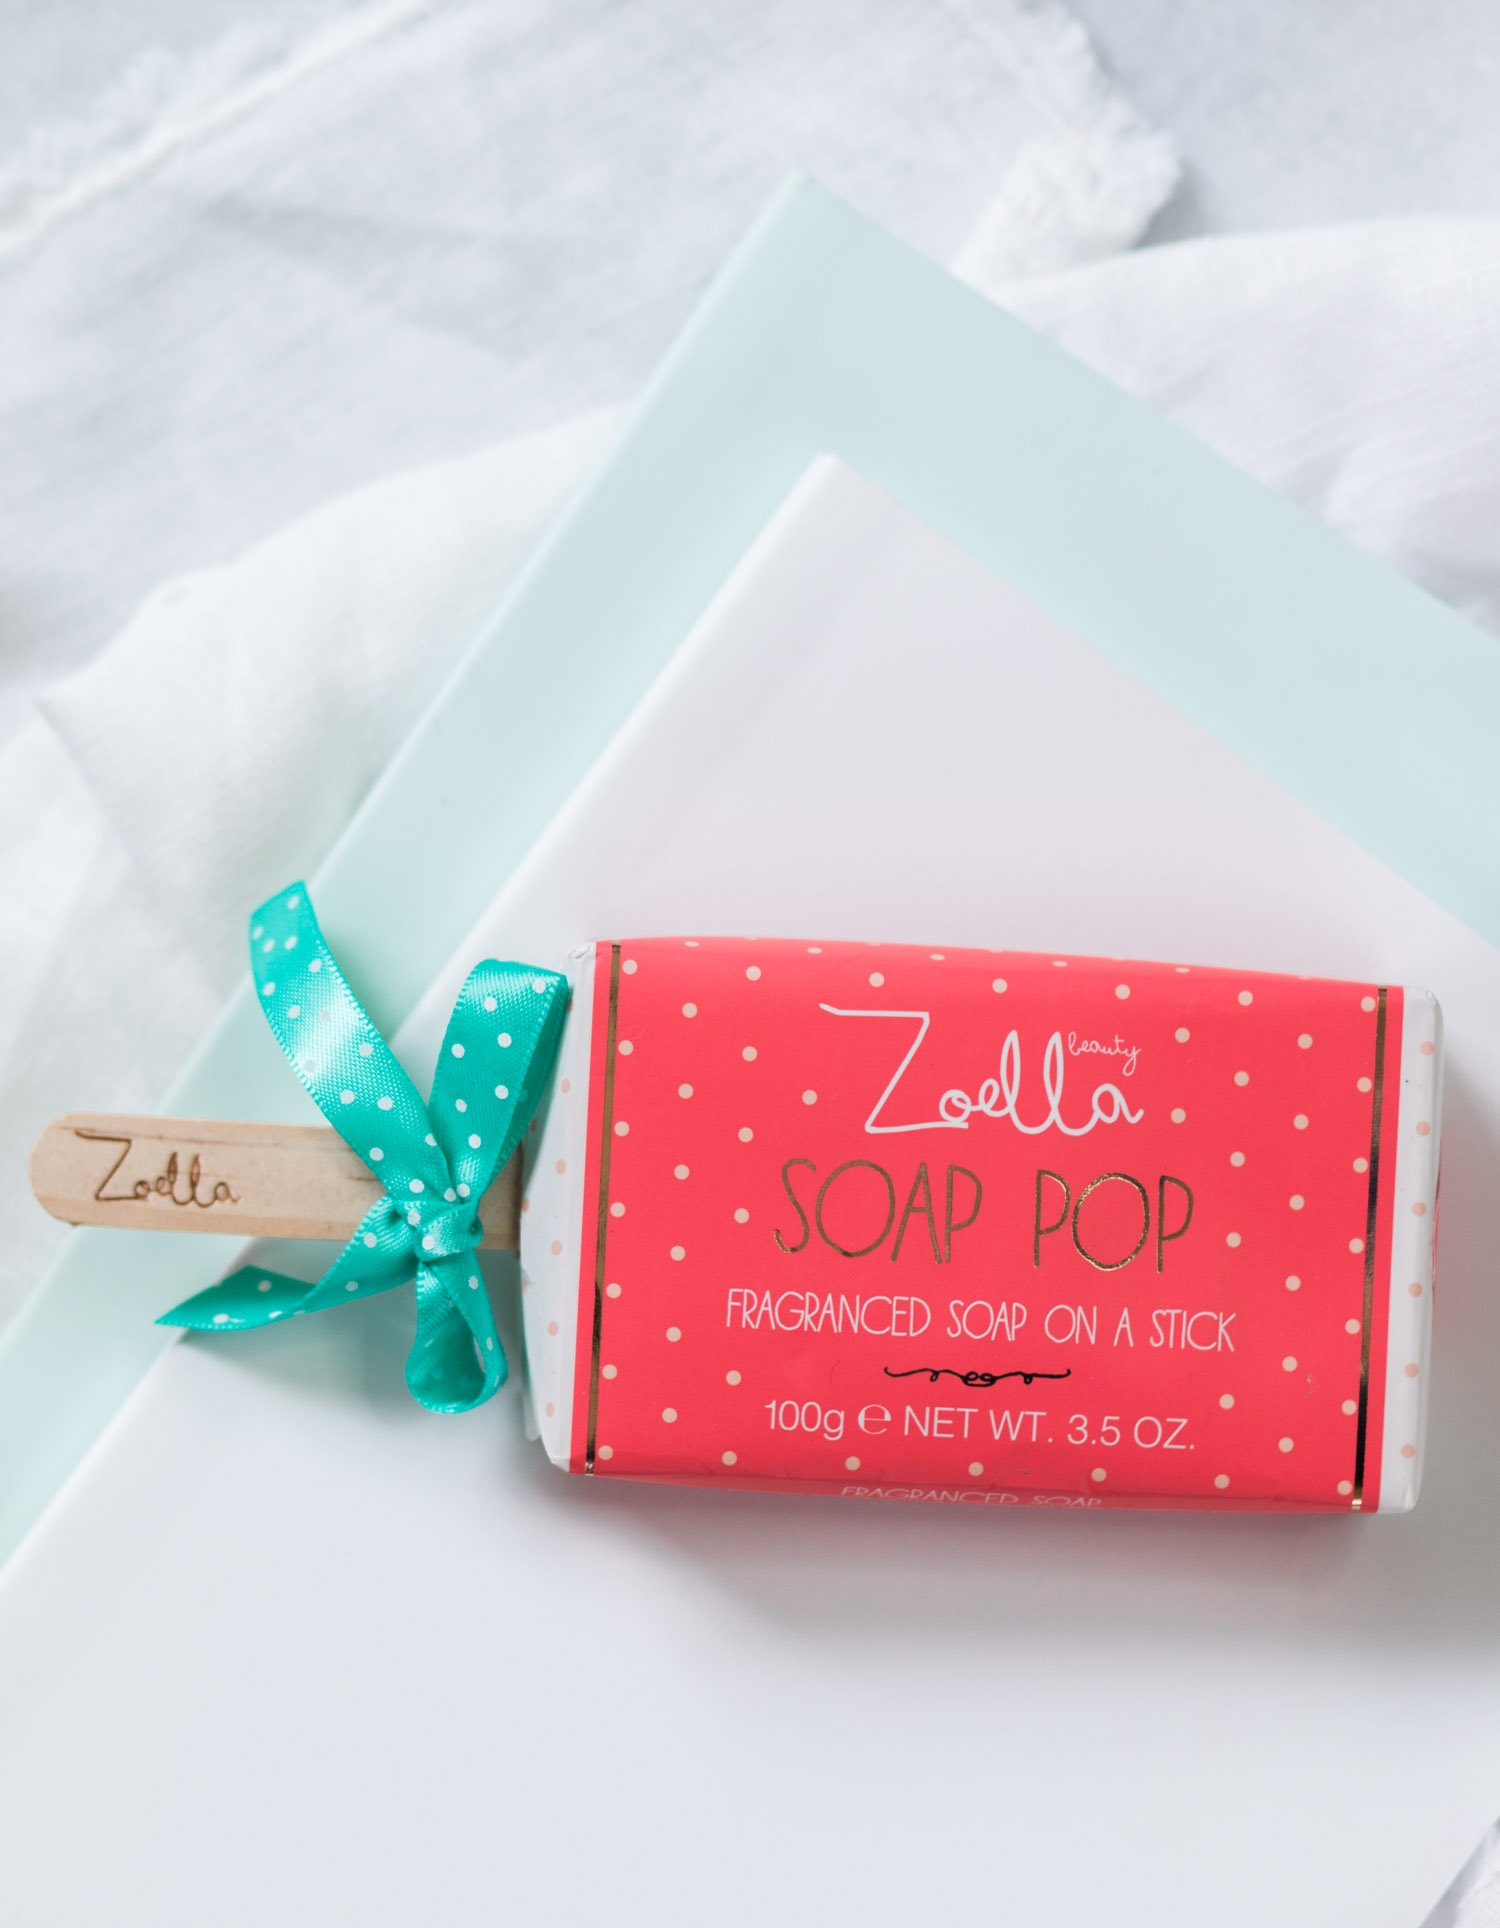 Zoella Beauty Soap Pop fragranced soap on a stick  | Review by beauty blogger Ashley Brooke Nicholas